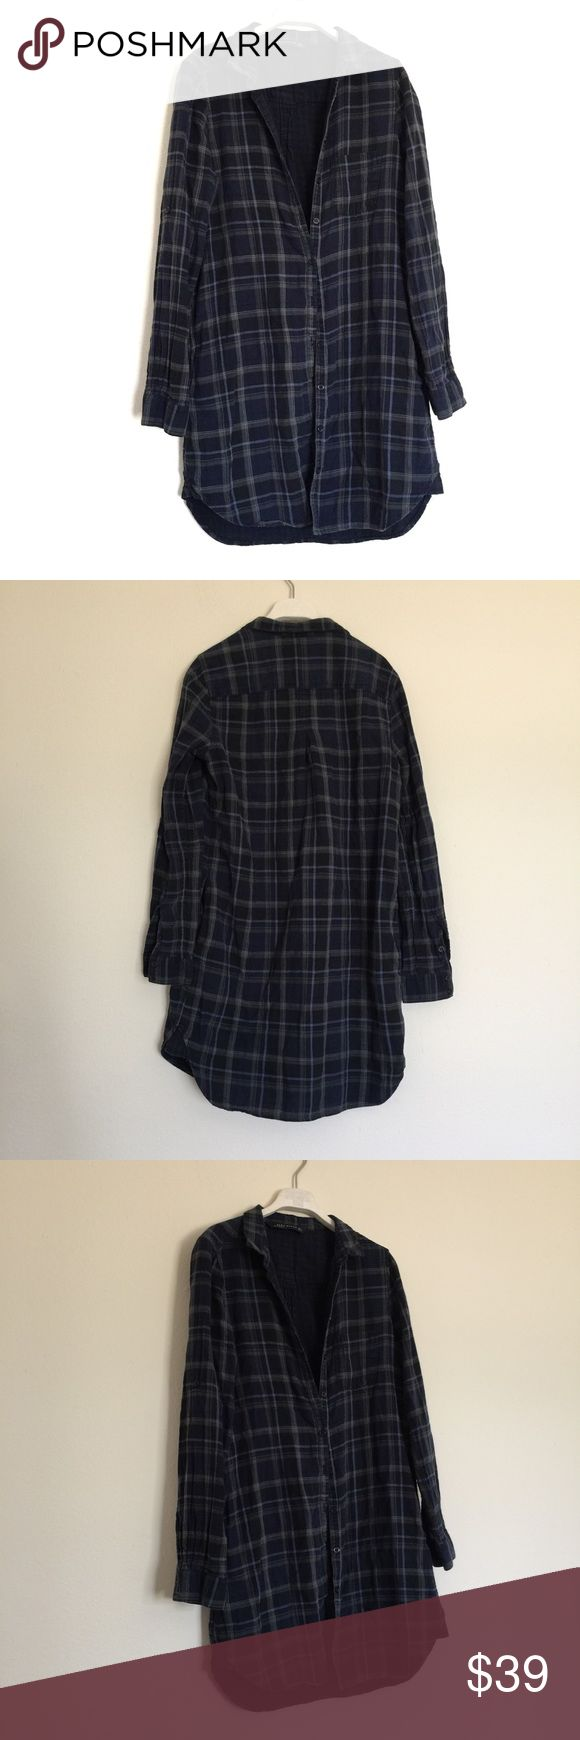 "Zara blue navy plaid long flannel shirt dress S Great condition. Flannel long sleeve shirt dress with plaid print. Side pockets and button down front with collar. Roll up sleeves with button cuffs. Pit to pit 19"", length 33"". 100% cotton. Zara Dresses Long Sleeve"